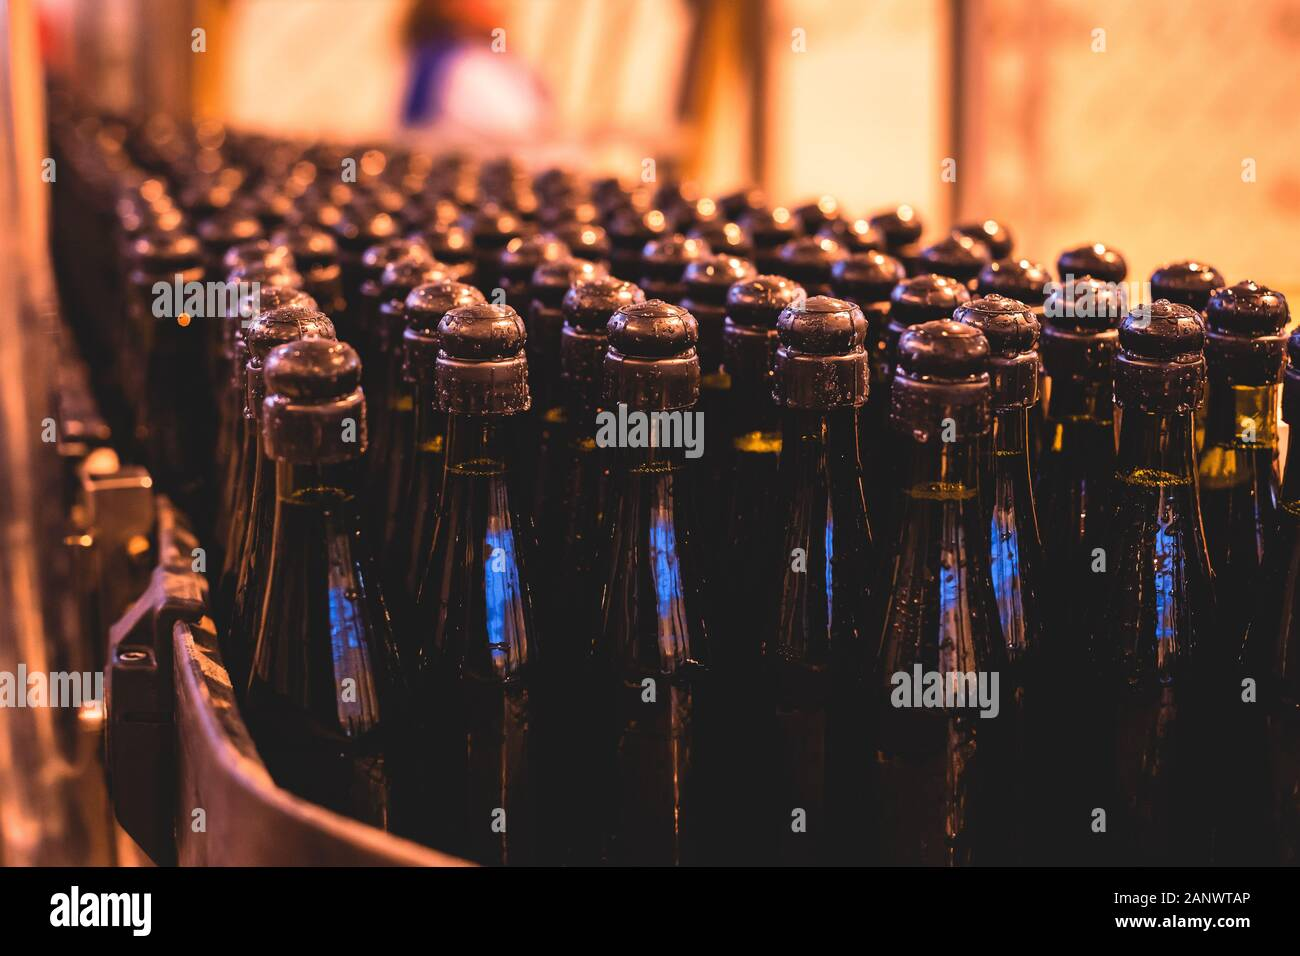 View of glass bottles on the conveyor belt, bottle necks on the production line, brewery equipment, inside wine factory, process of alcohol liquor man Stock Photo